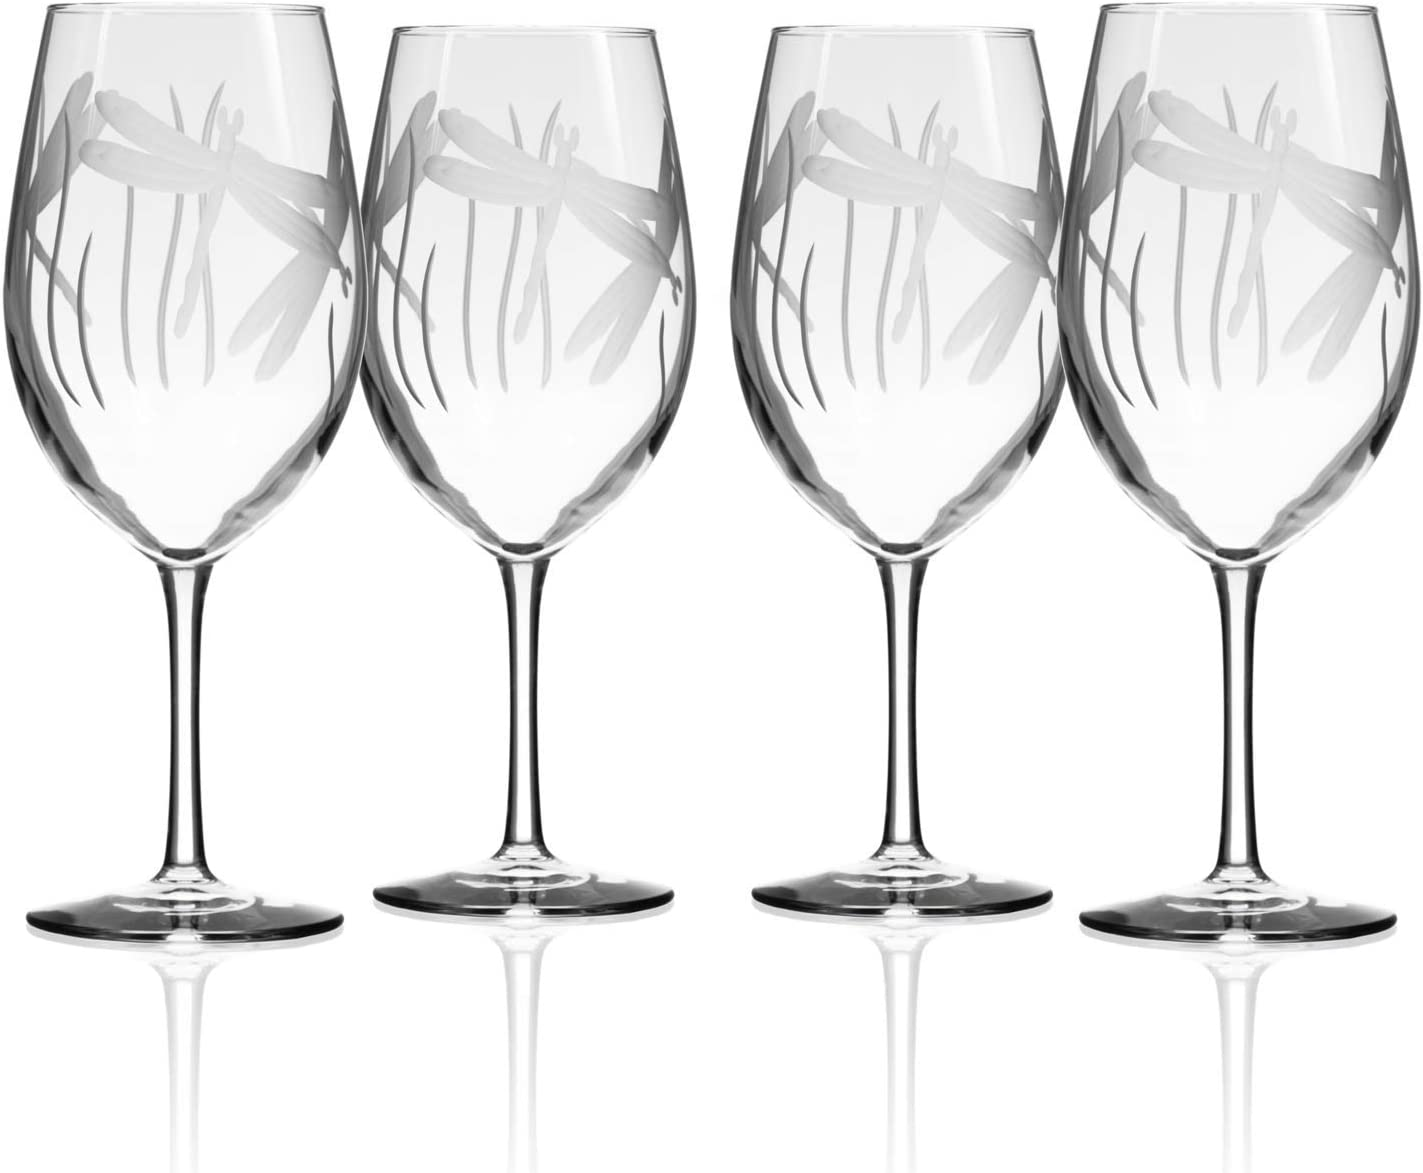 Dragonfly All Purpose Wine Glass 18 ounce - Stemmed Wine Glasses Set of 4 - Lead Free Crystal - Etched Large Wine Glasses - Made in the USA - A Rolf Glass Classic